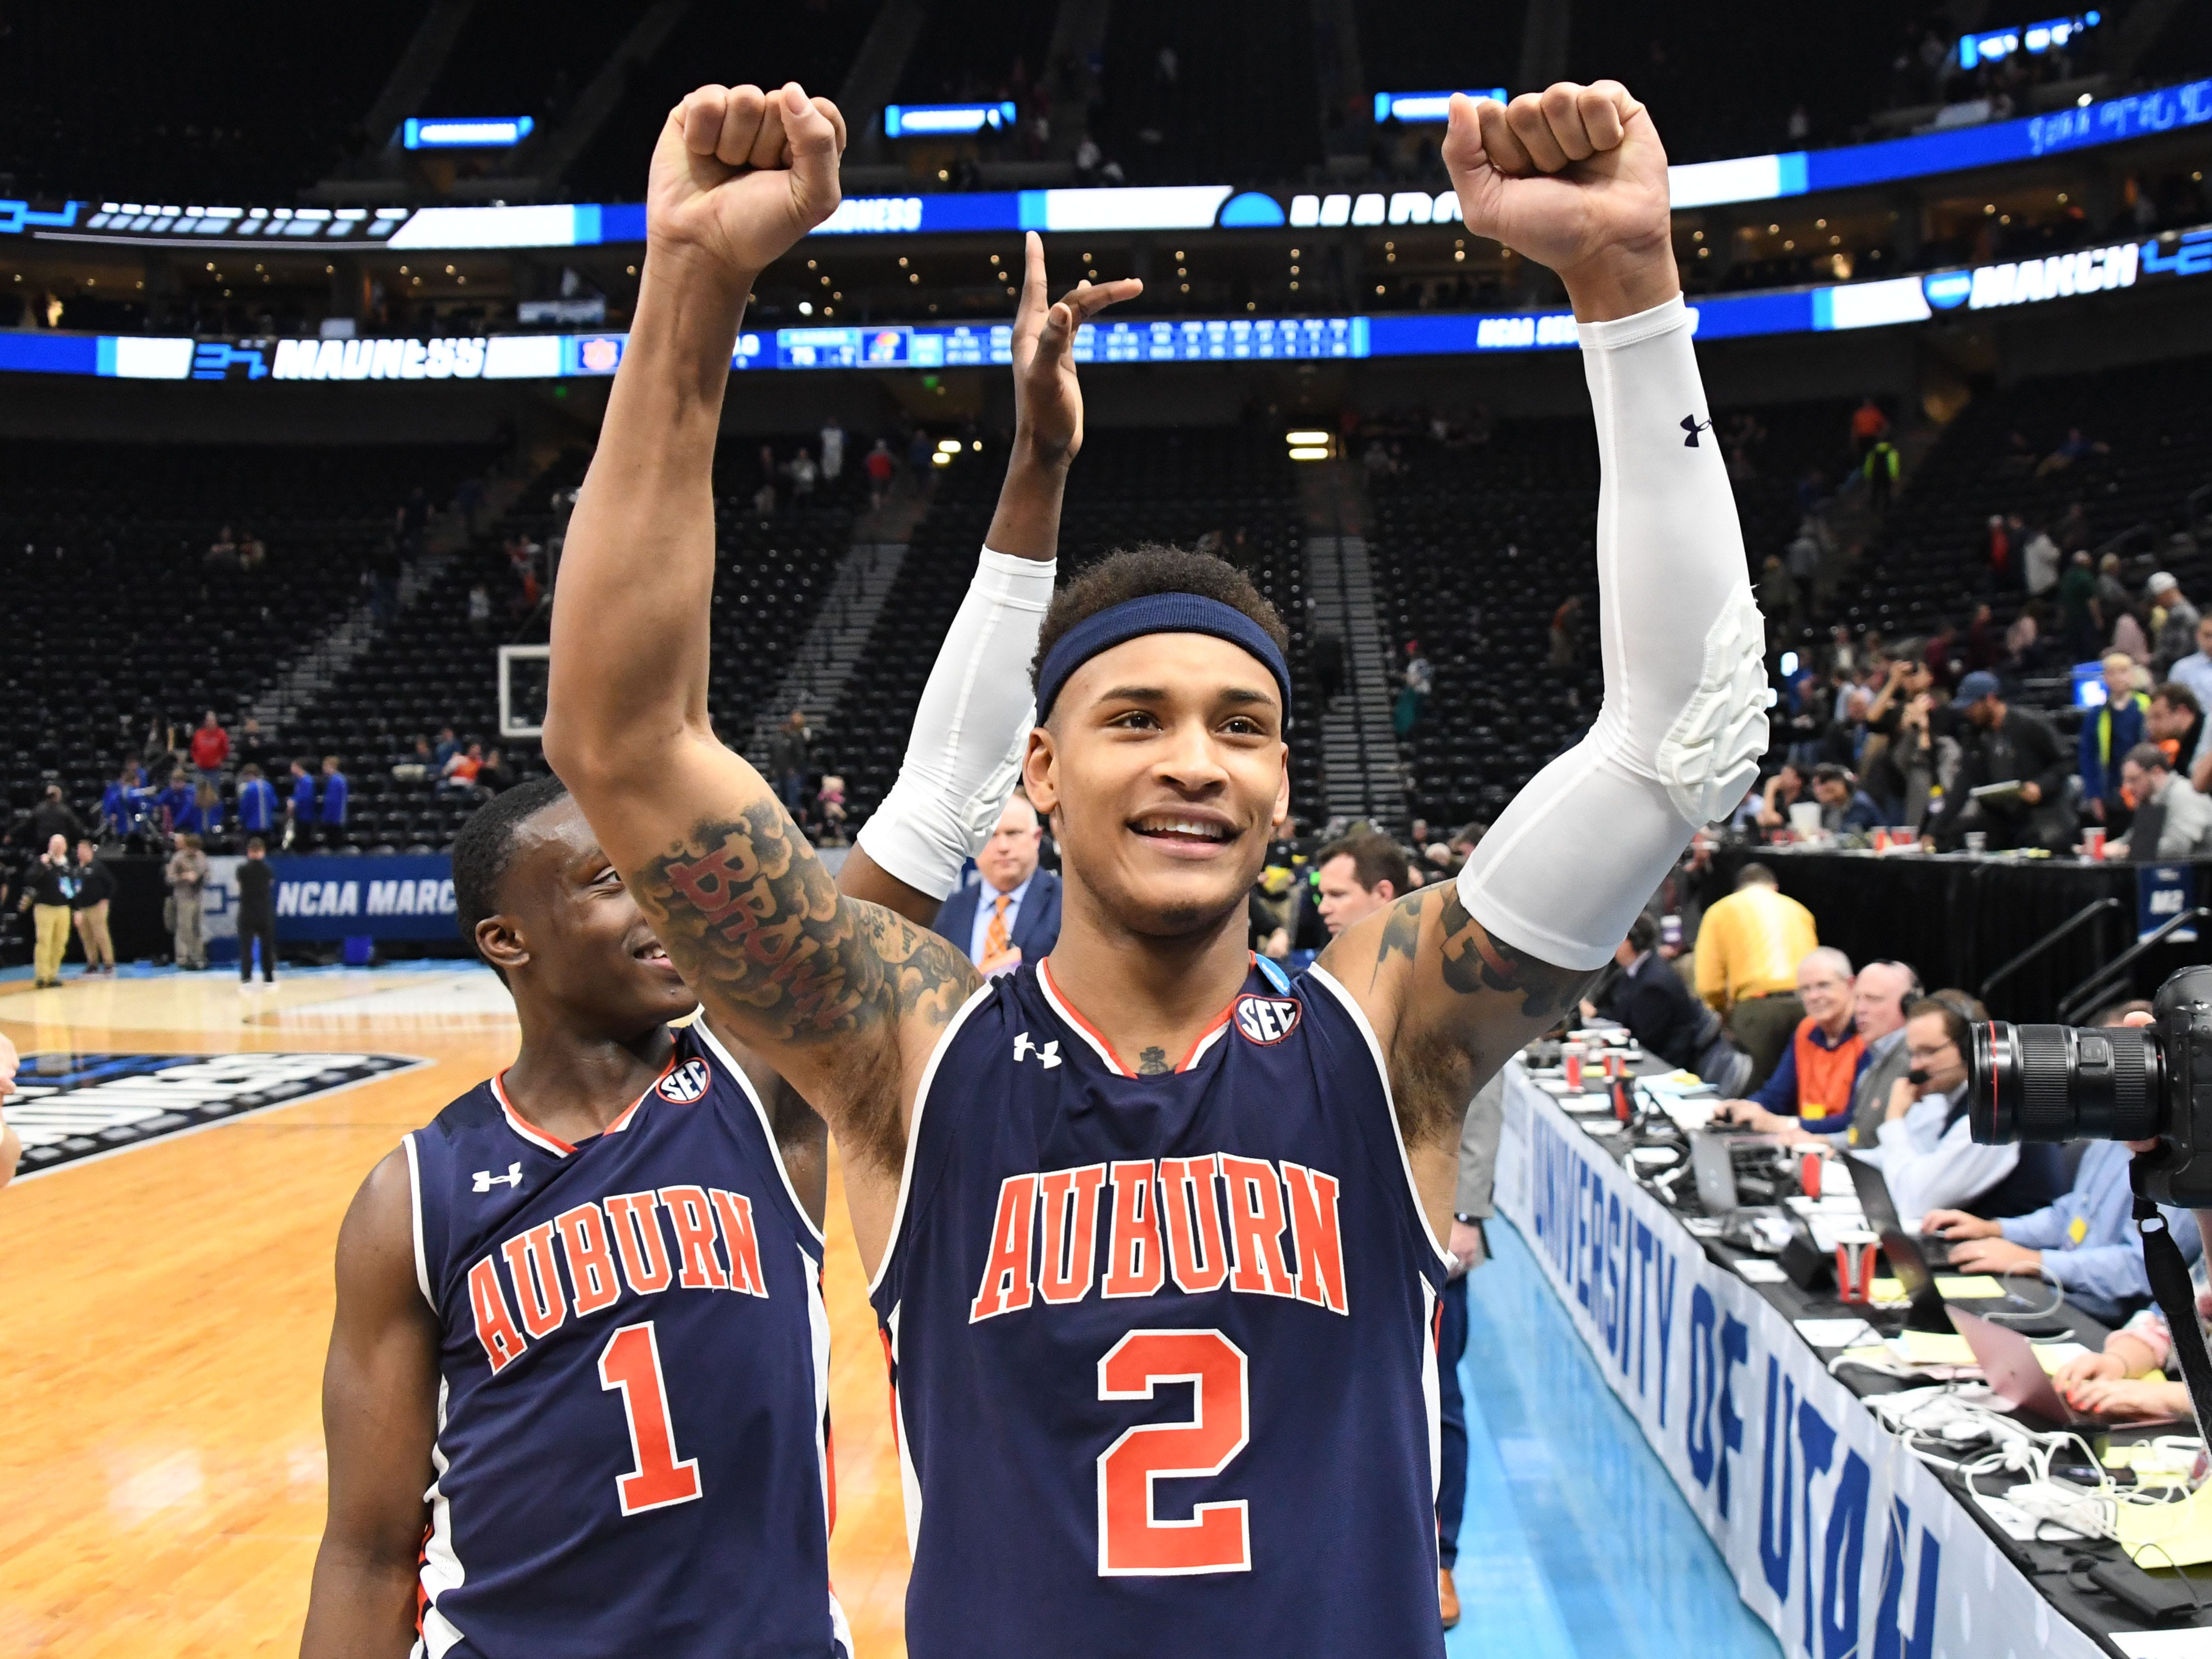 Auburn guard Bryce Brown (2) celebrates the win over the Kansas Jayhawks in the second round of the 2019 NCAA Tournament at Vivint Smart Home Arena on March 23, 2019, in Salt Lake City.